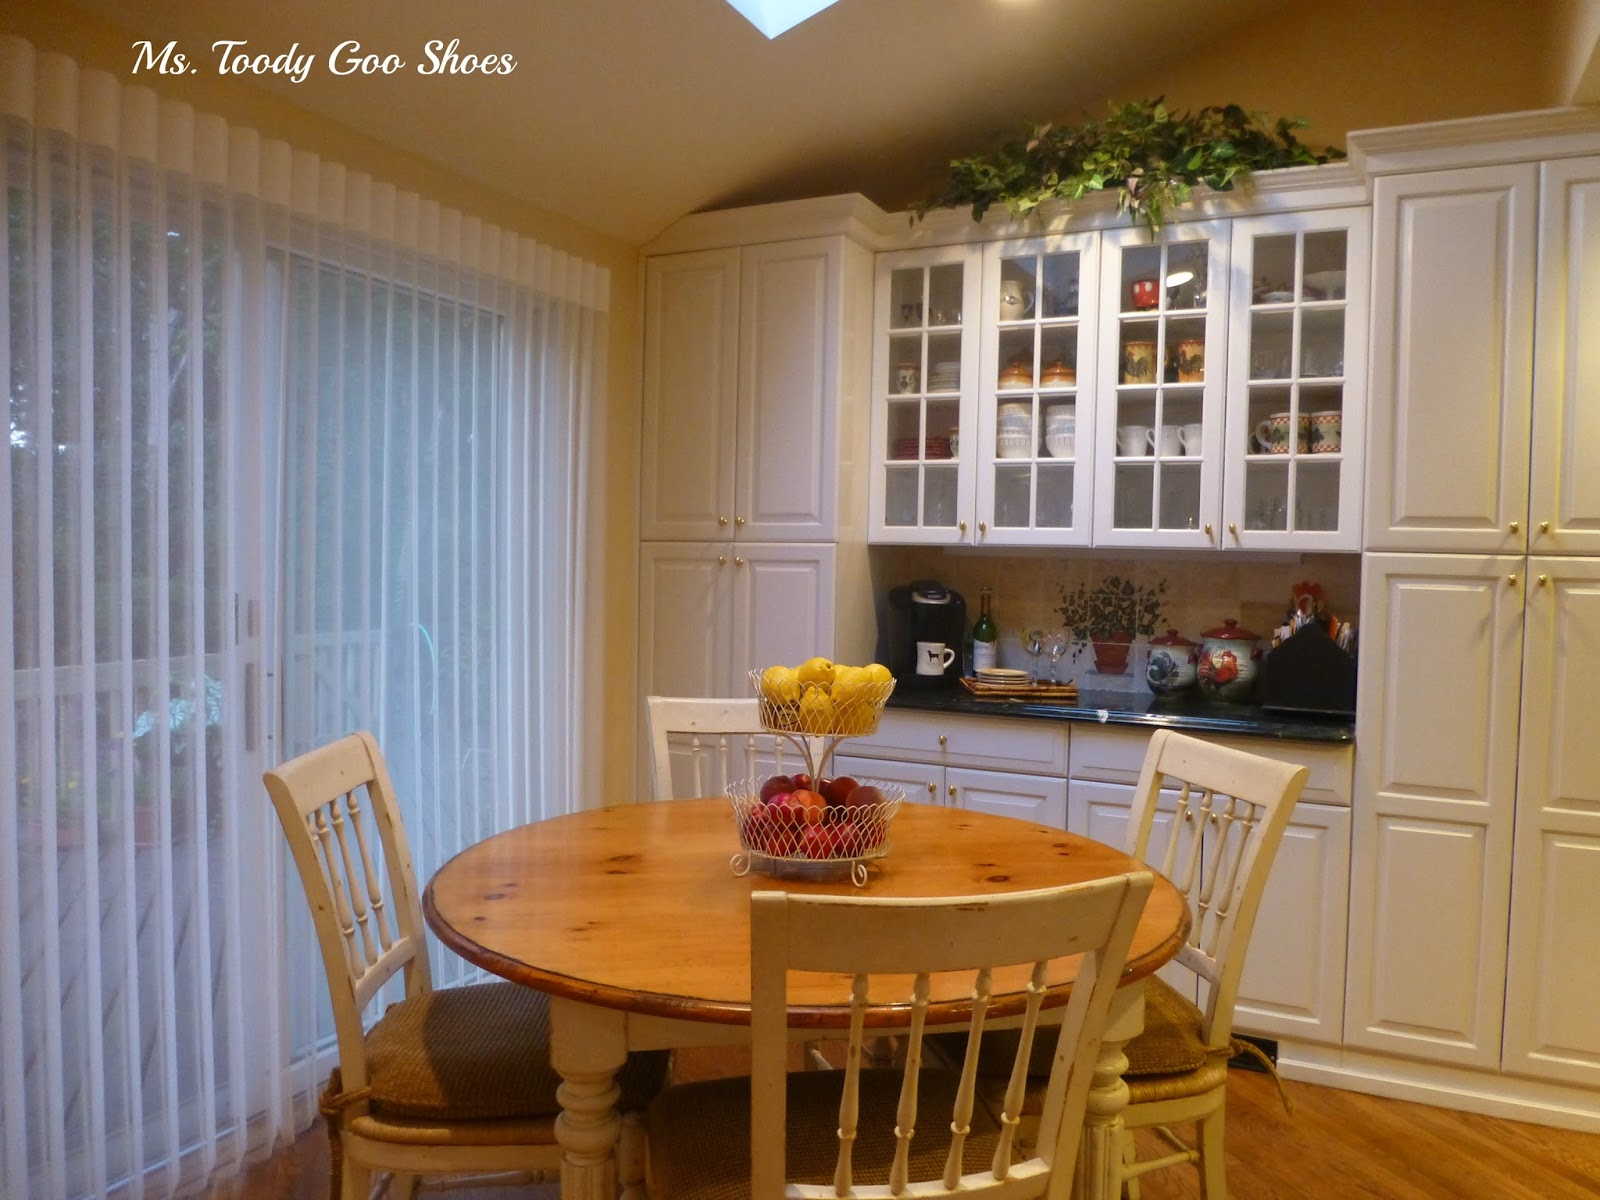 Traditional Home Tour by Ms. Toody Goo Shoes